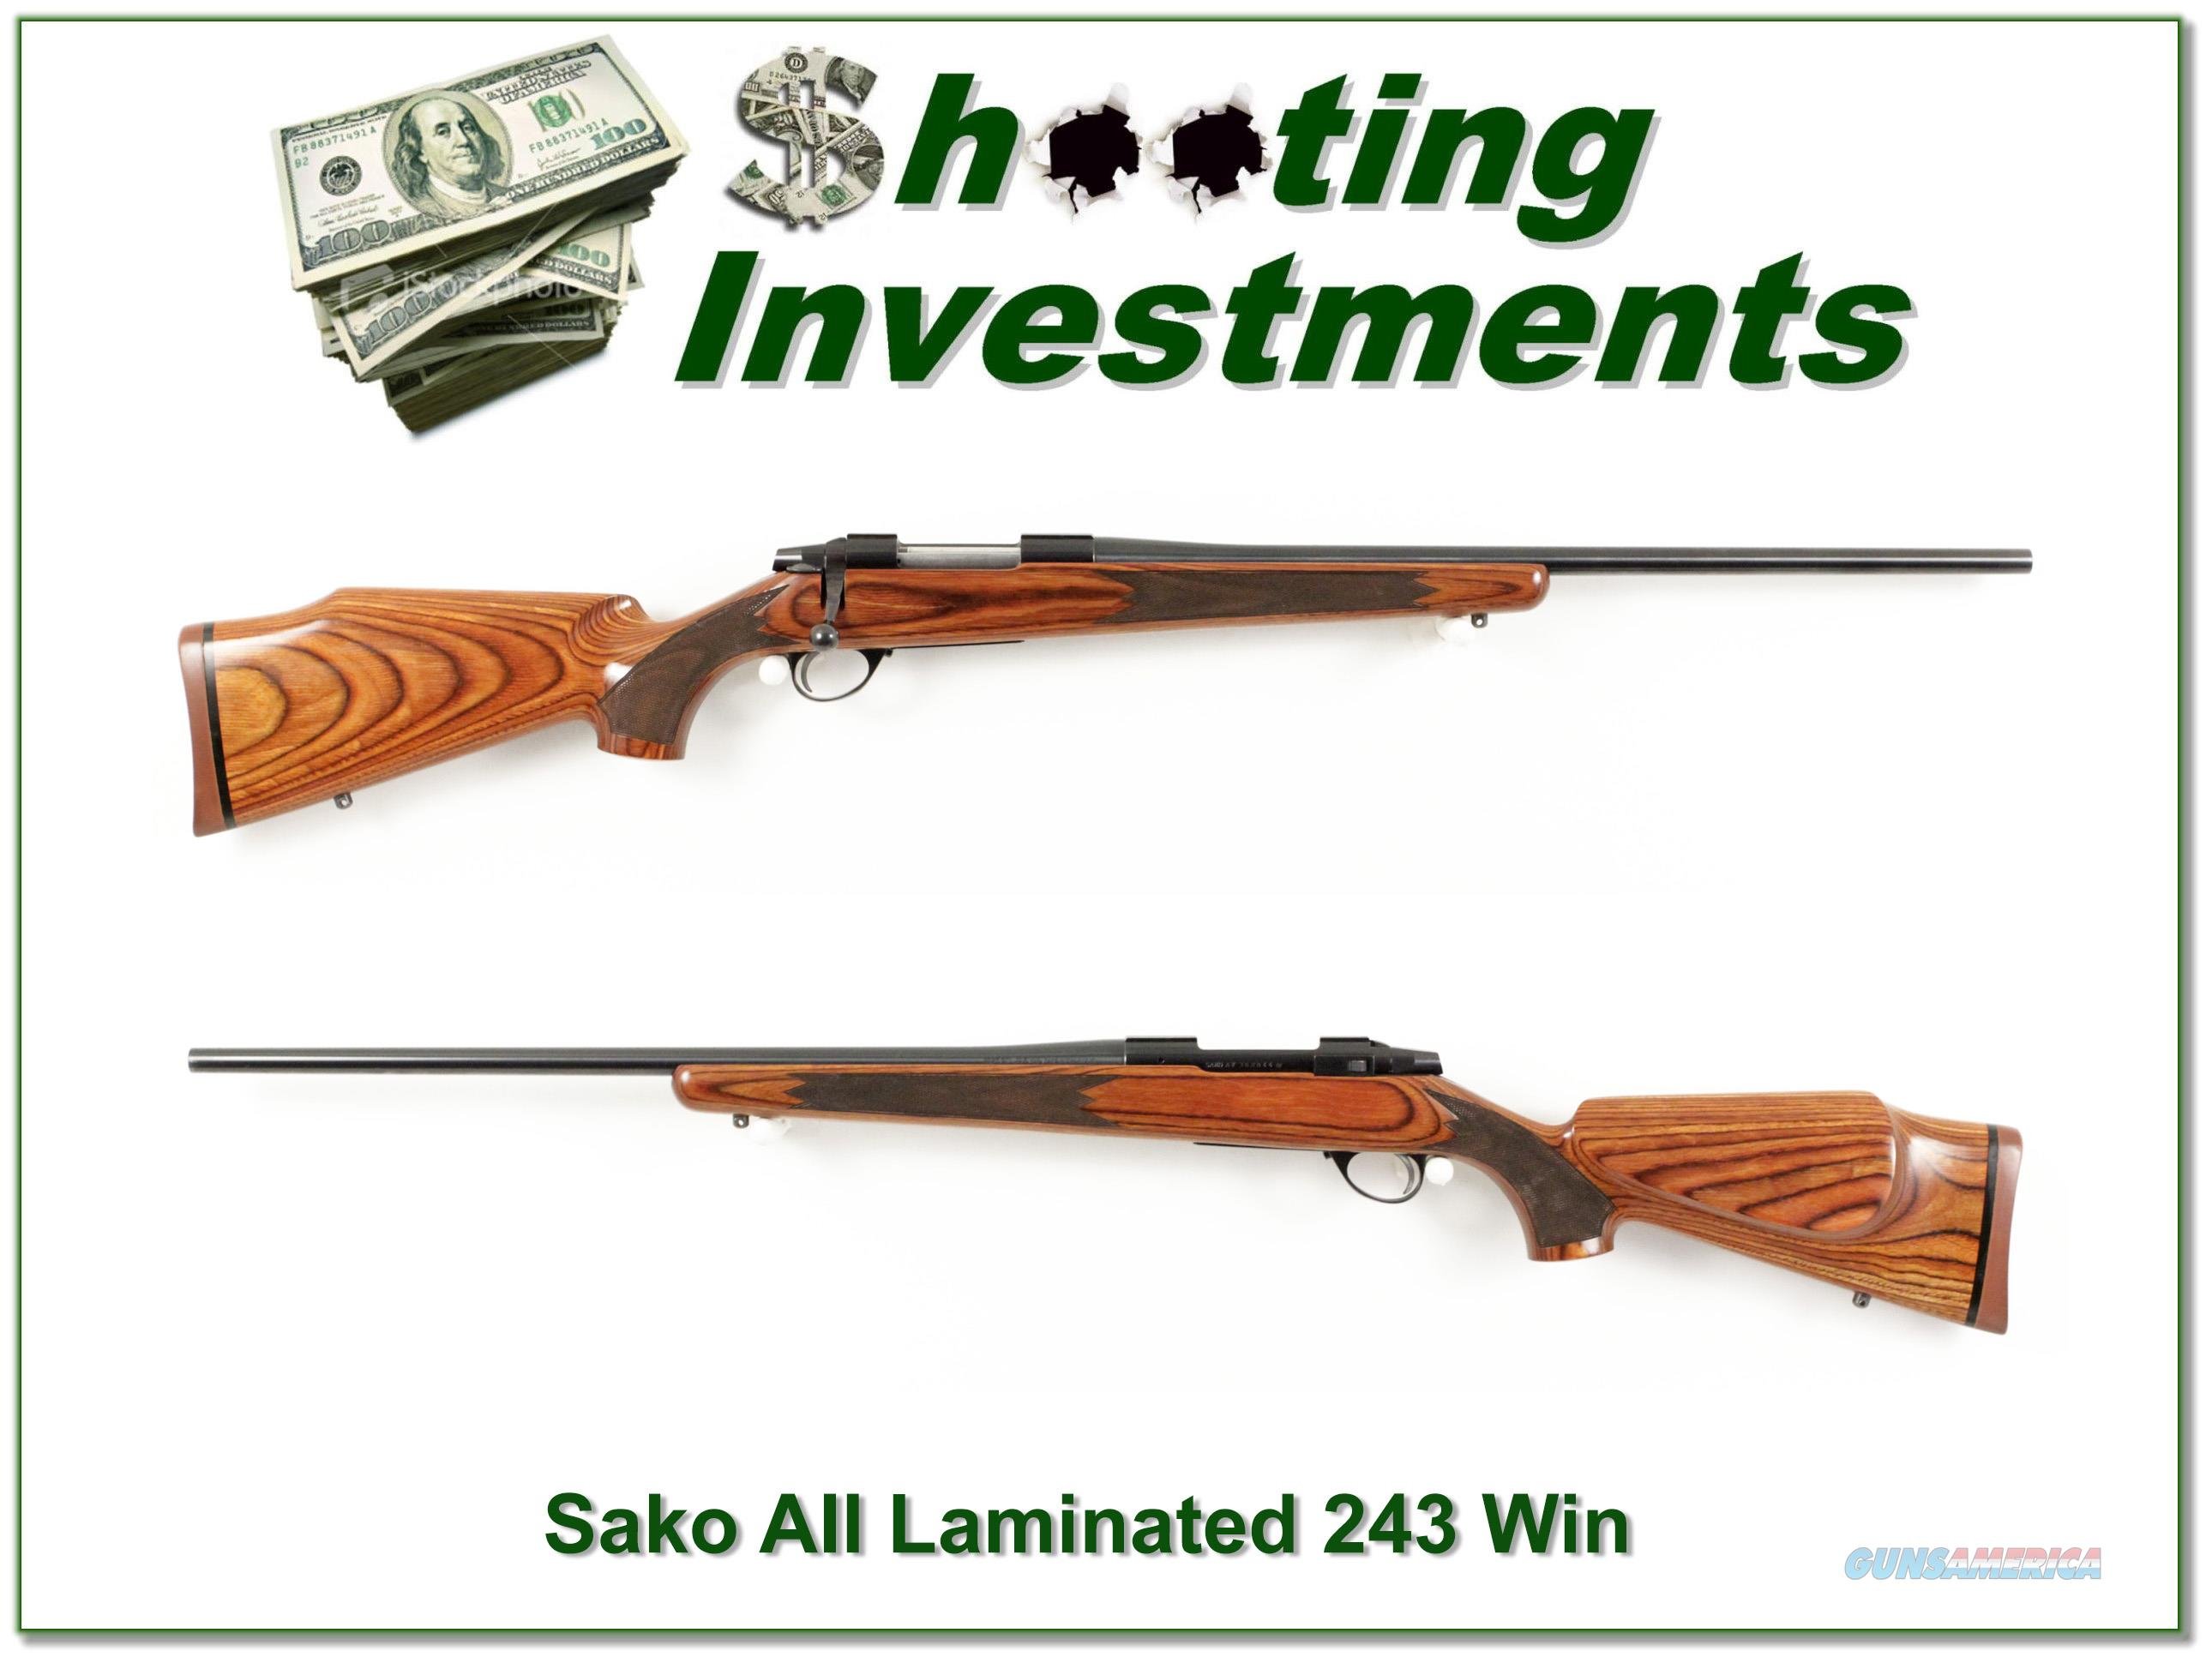 Sako AII Laminated 243 Win Exc Cond!  Guns > Rifles > Sako Rifles > Other Bolt Action